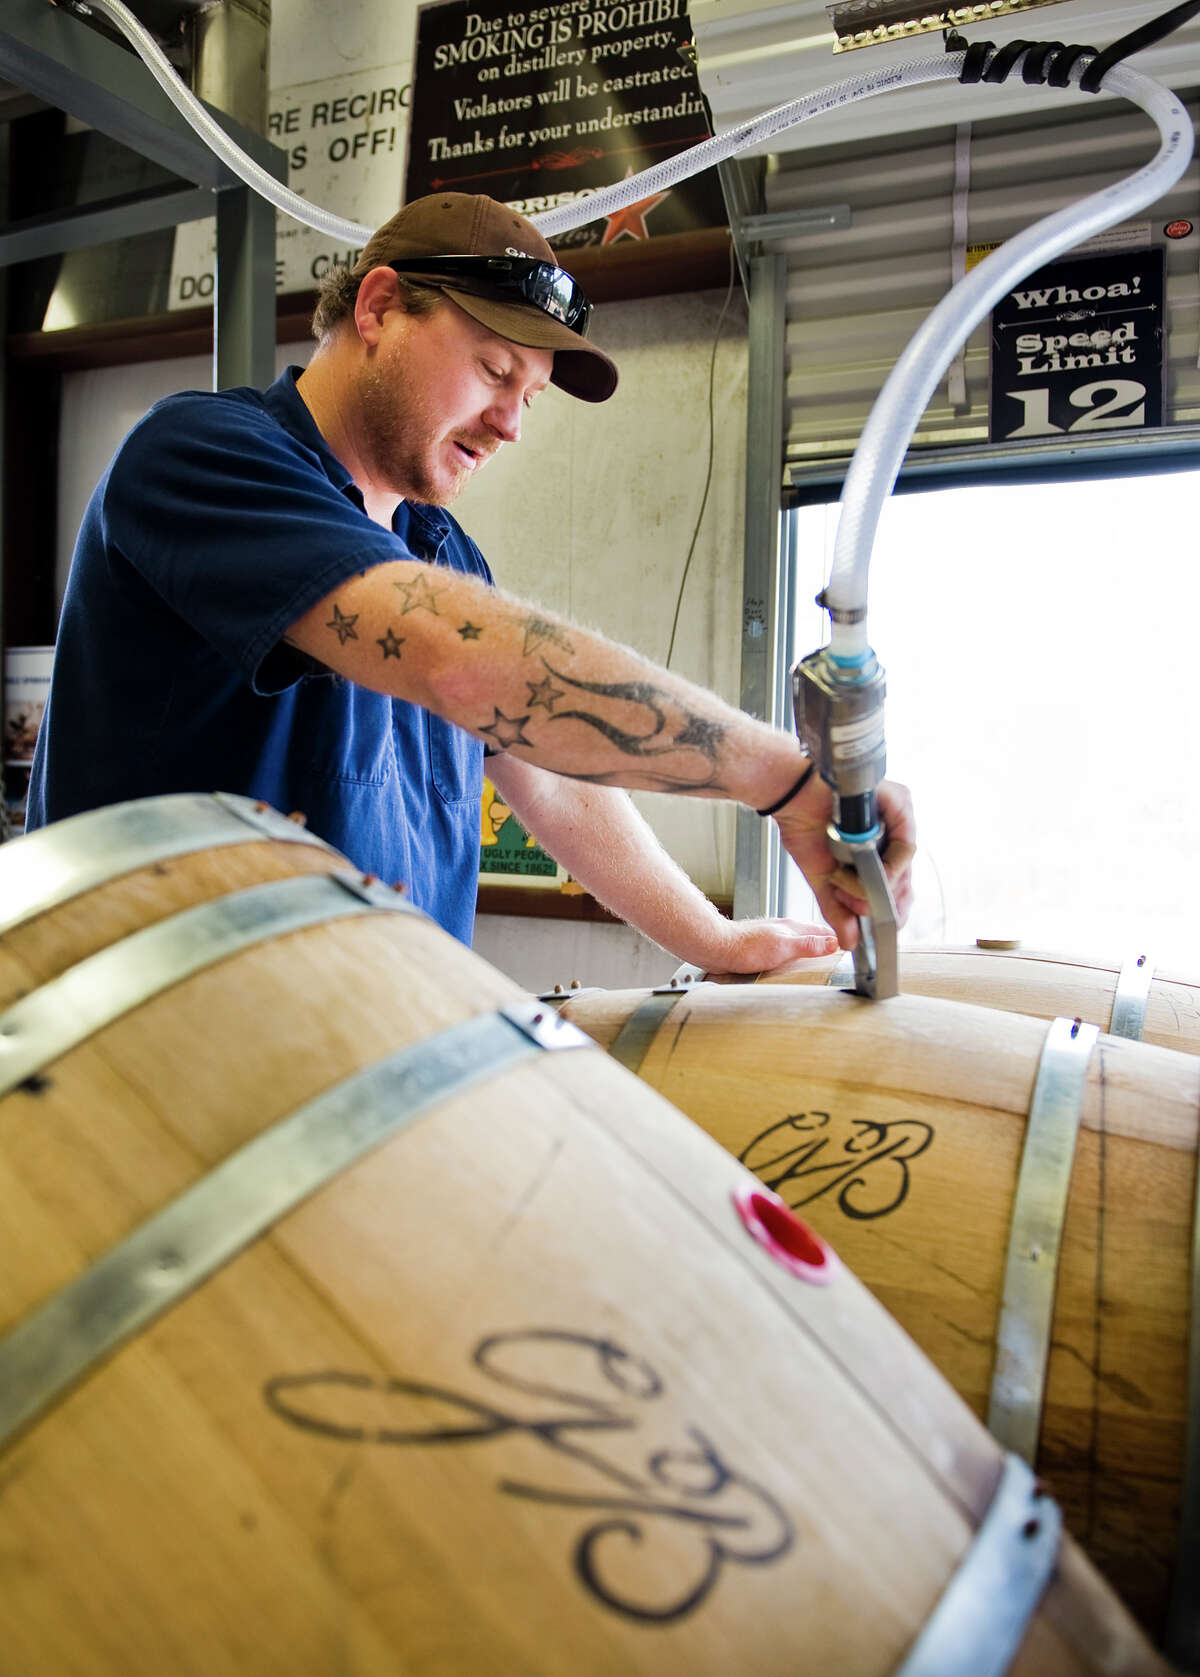 """Master distiller/distillery director Donnis Todd fills a barrel with """"white dog,"""" firmented bourbon before it's been aged, at Garrison Bros. Distillery in Hye, TX on Sat., Jan 12, 2013. Ashley Landis for the Houston Chronicle"""